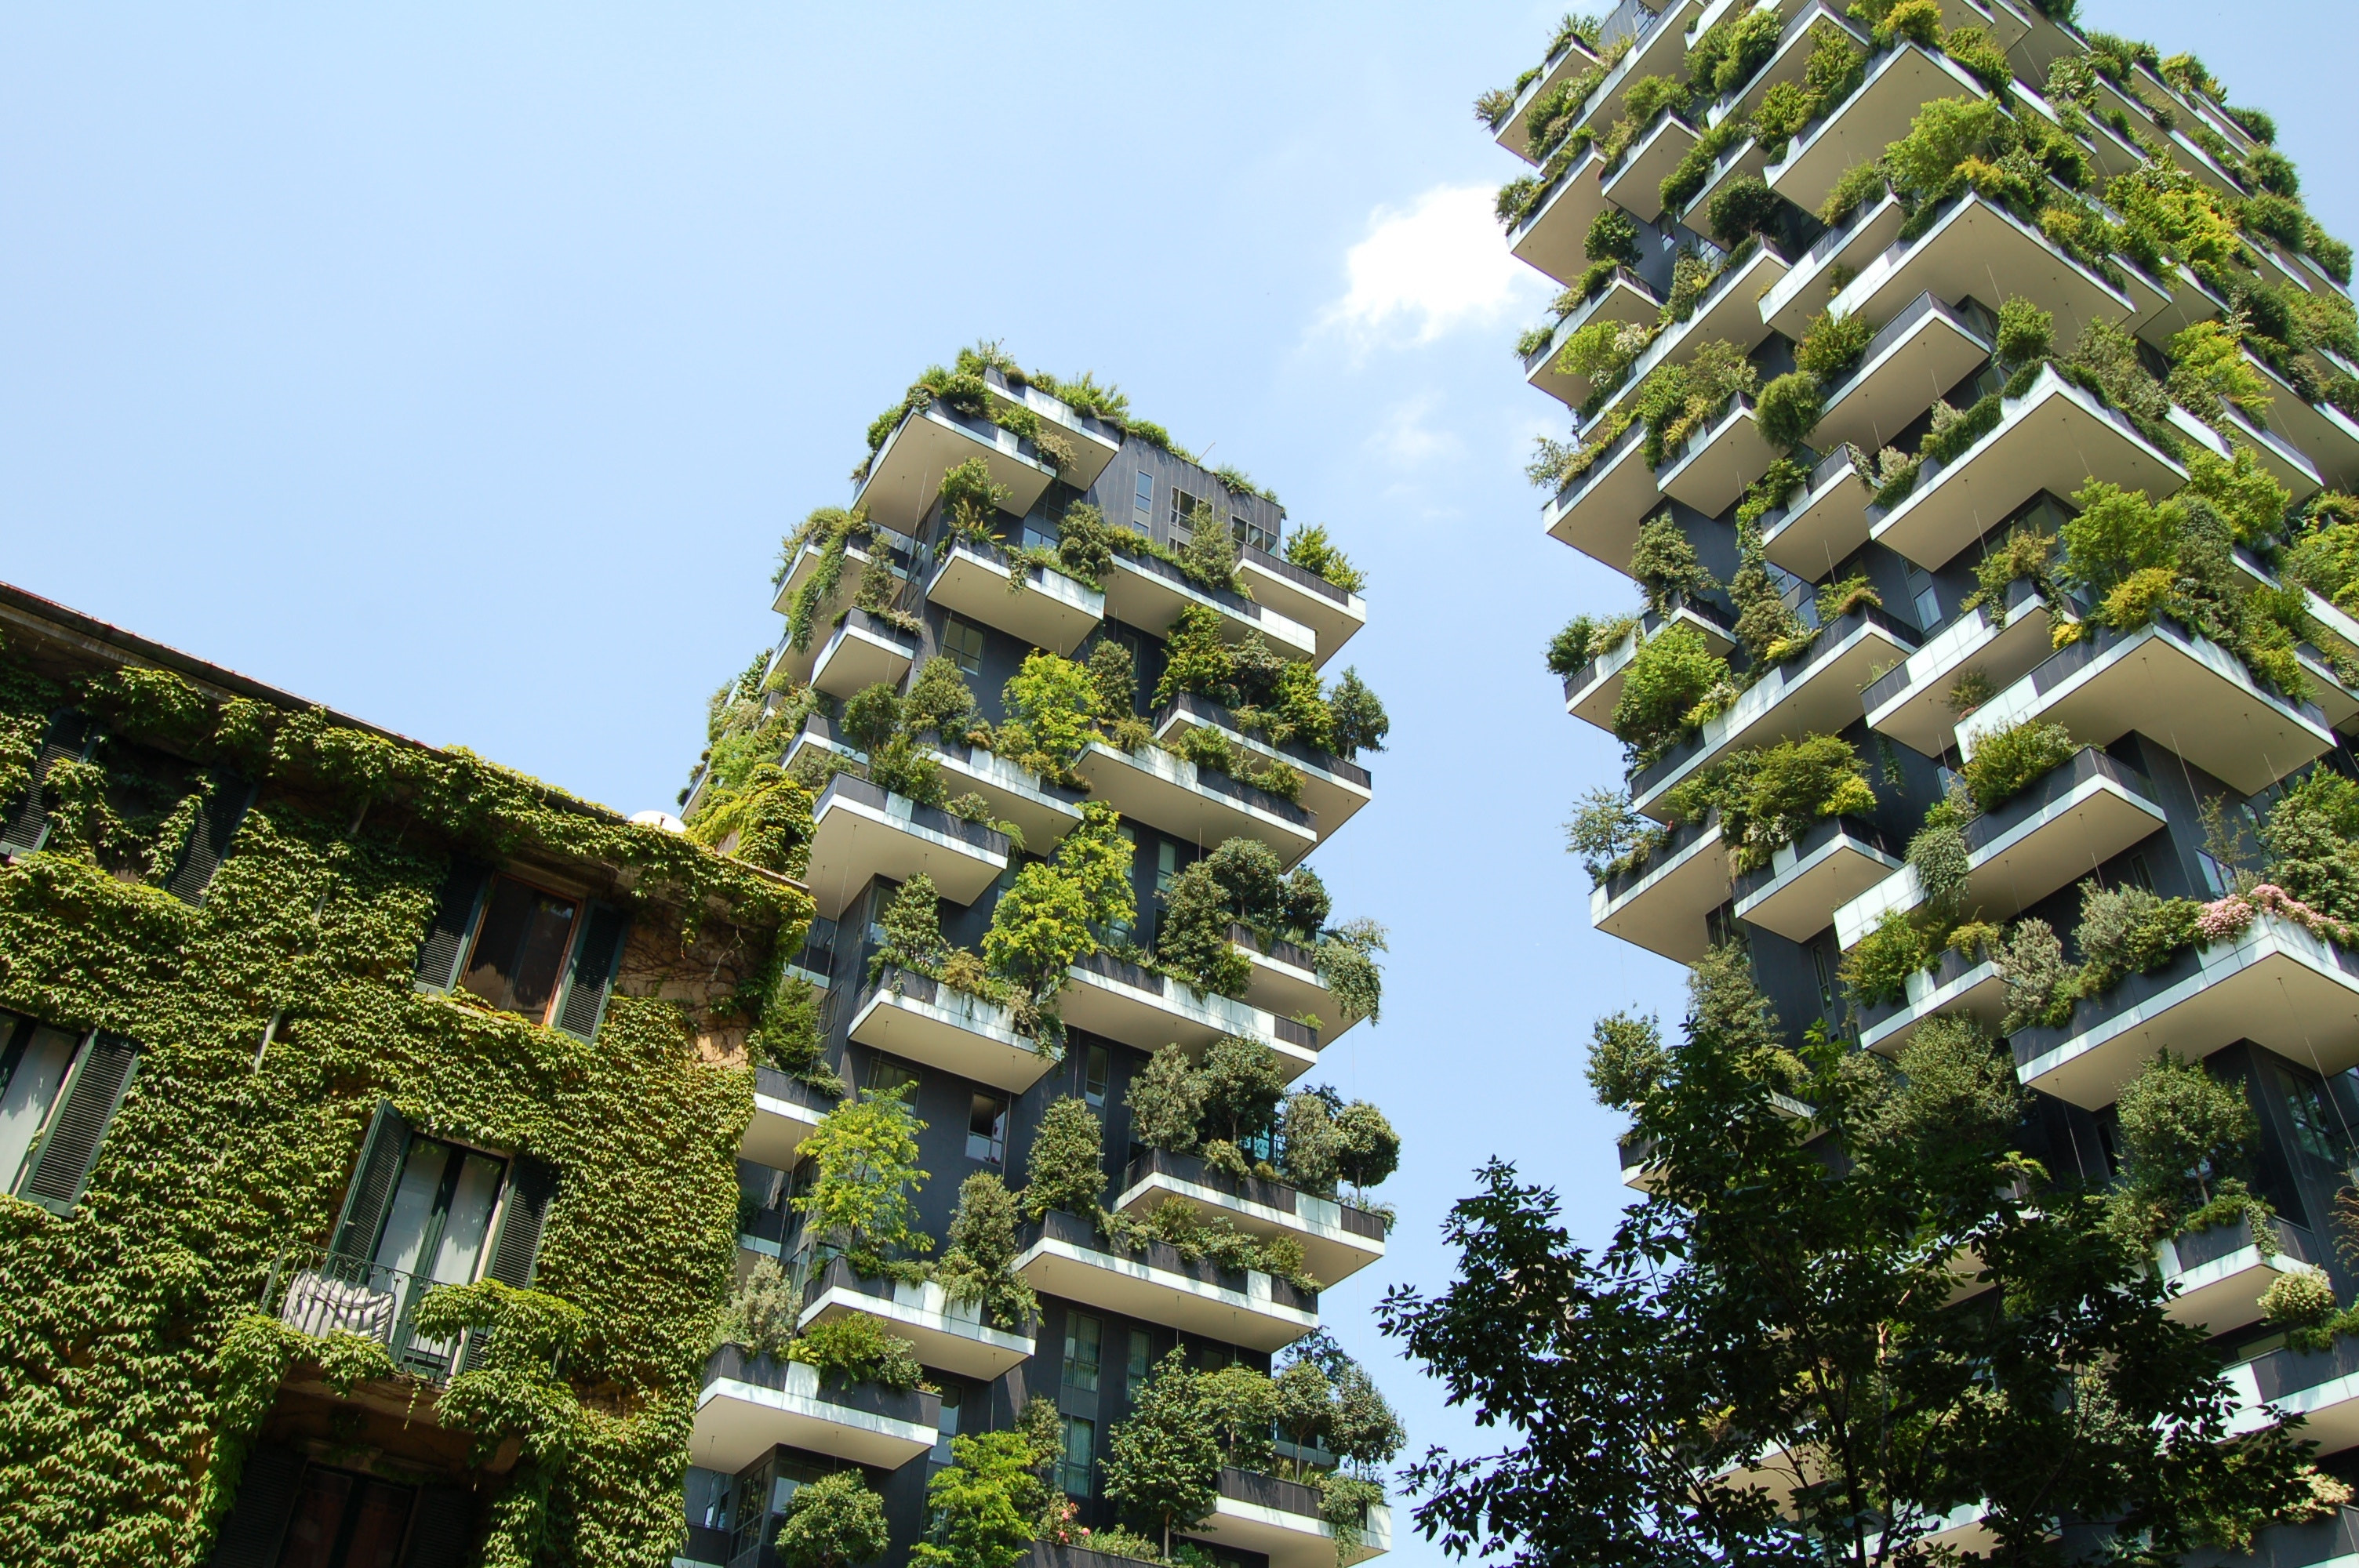 Building Green has great impact on the environment